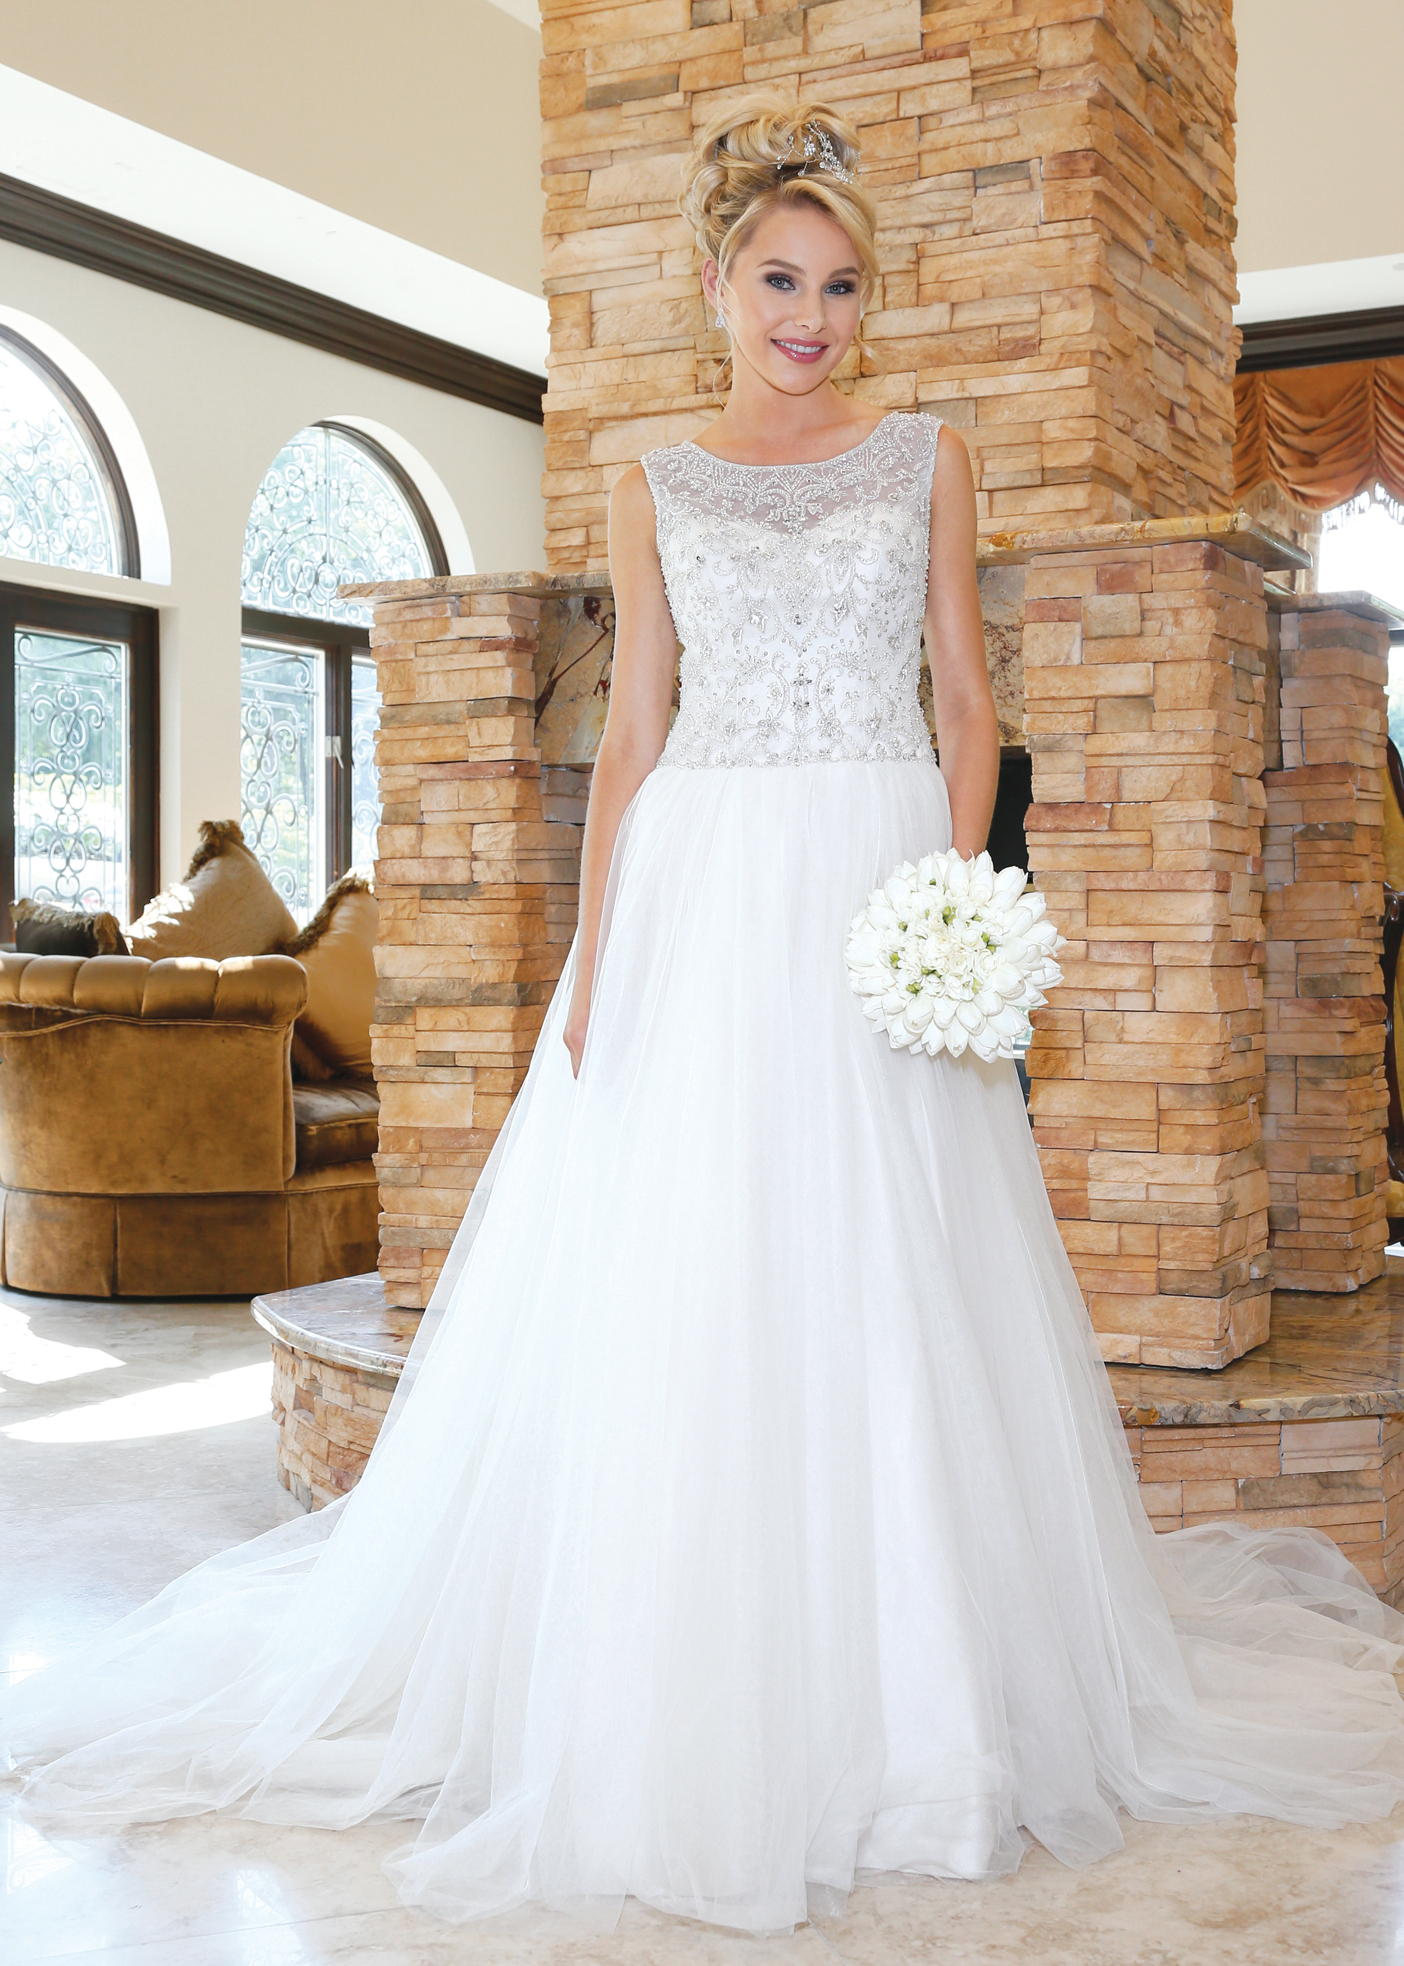 Glamorous Ballgown Wedding Dress by Oleg Cassini NY, NJ